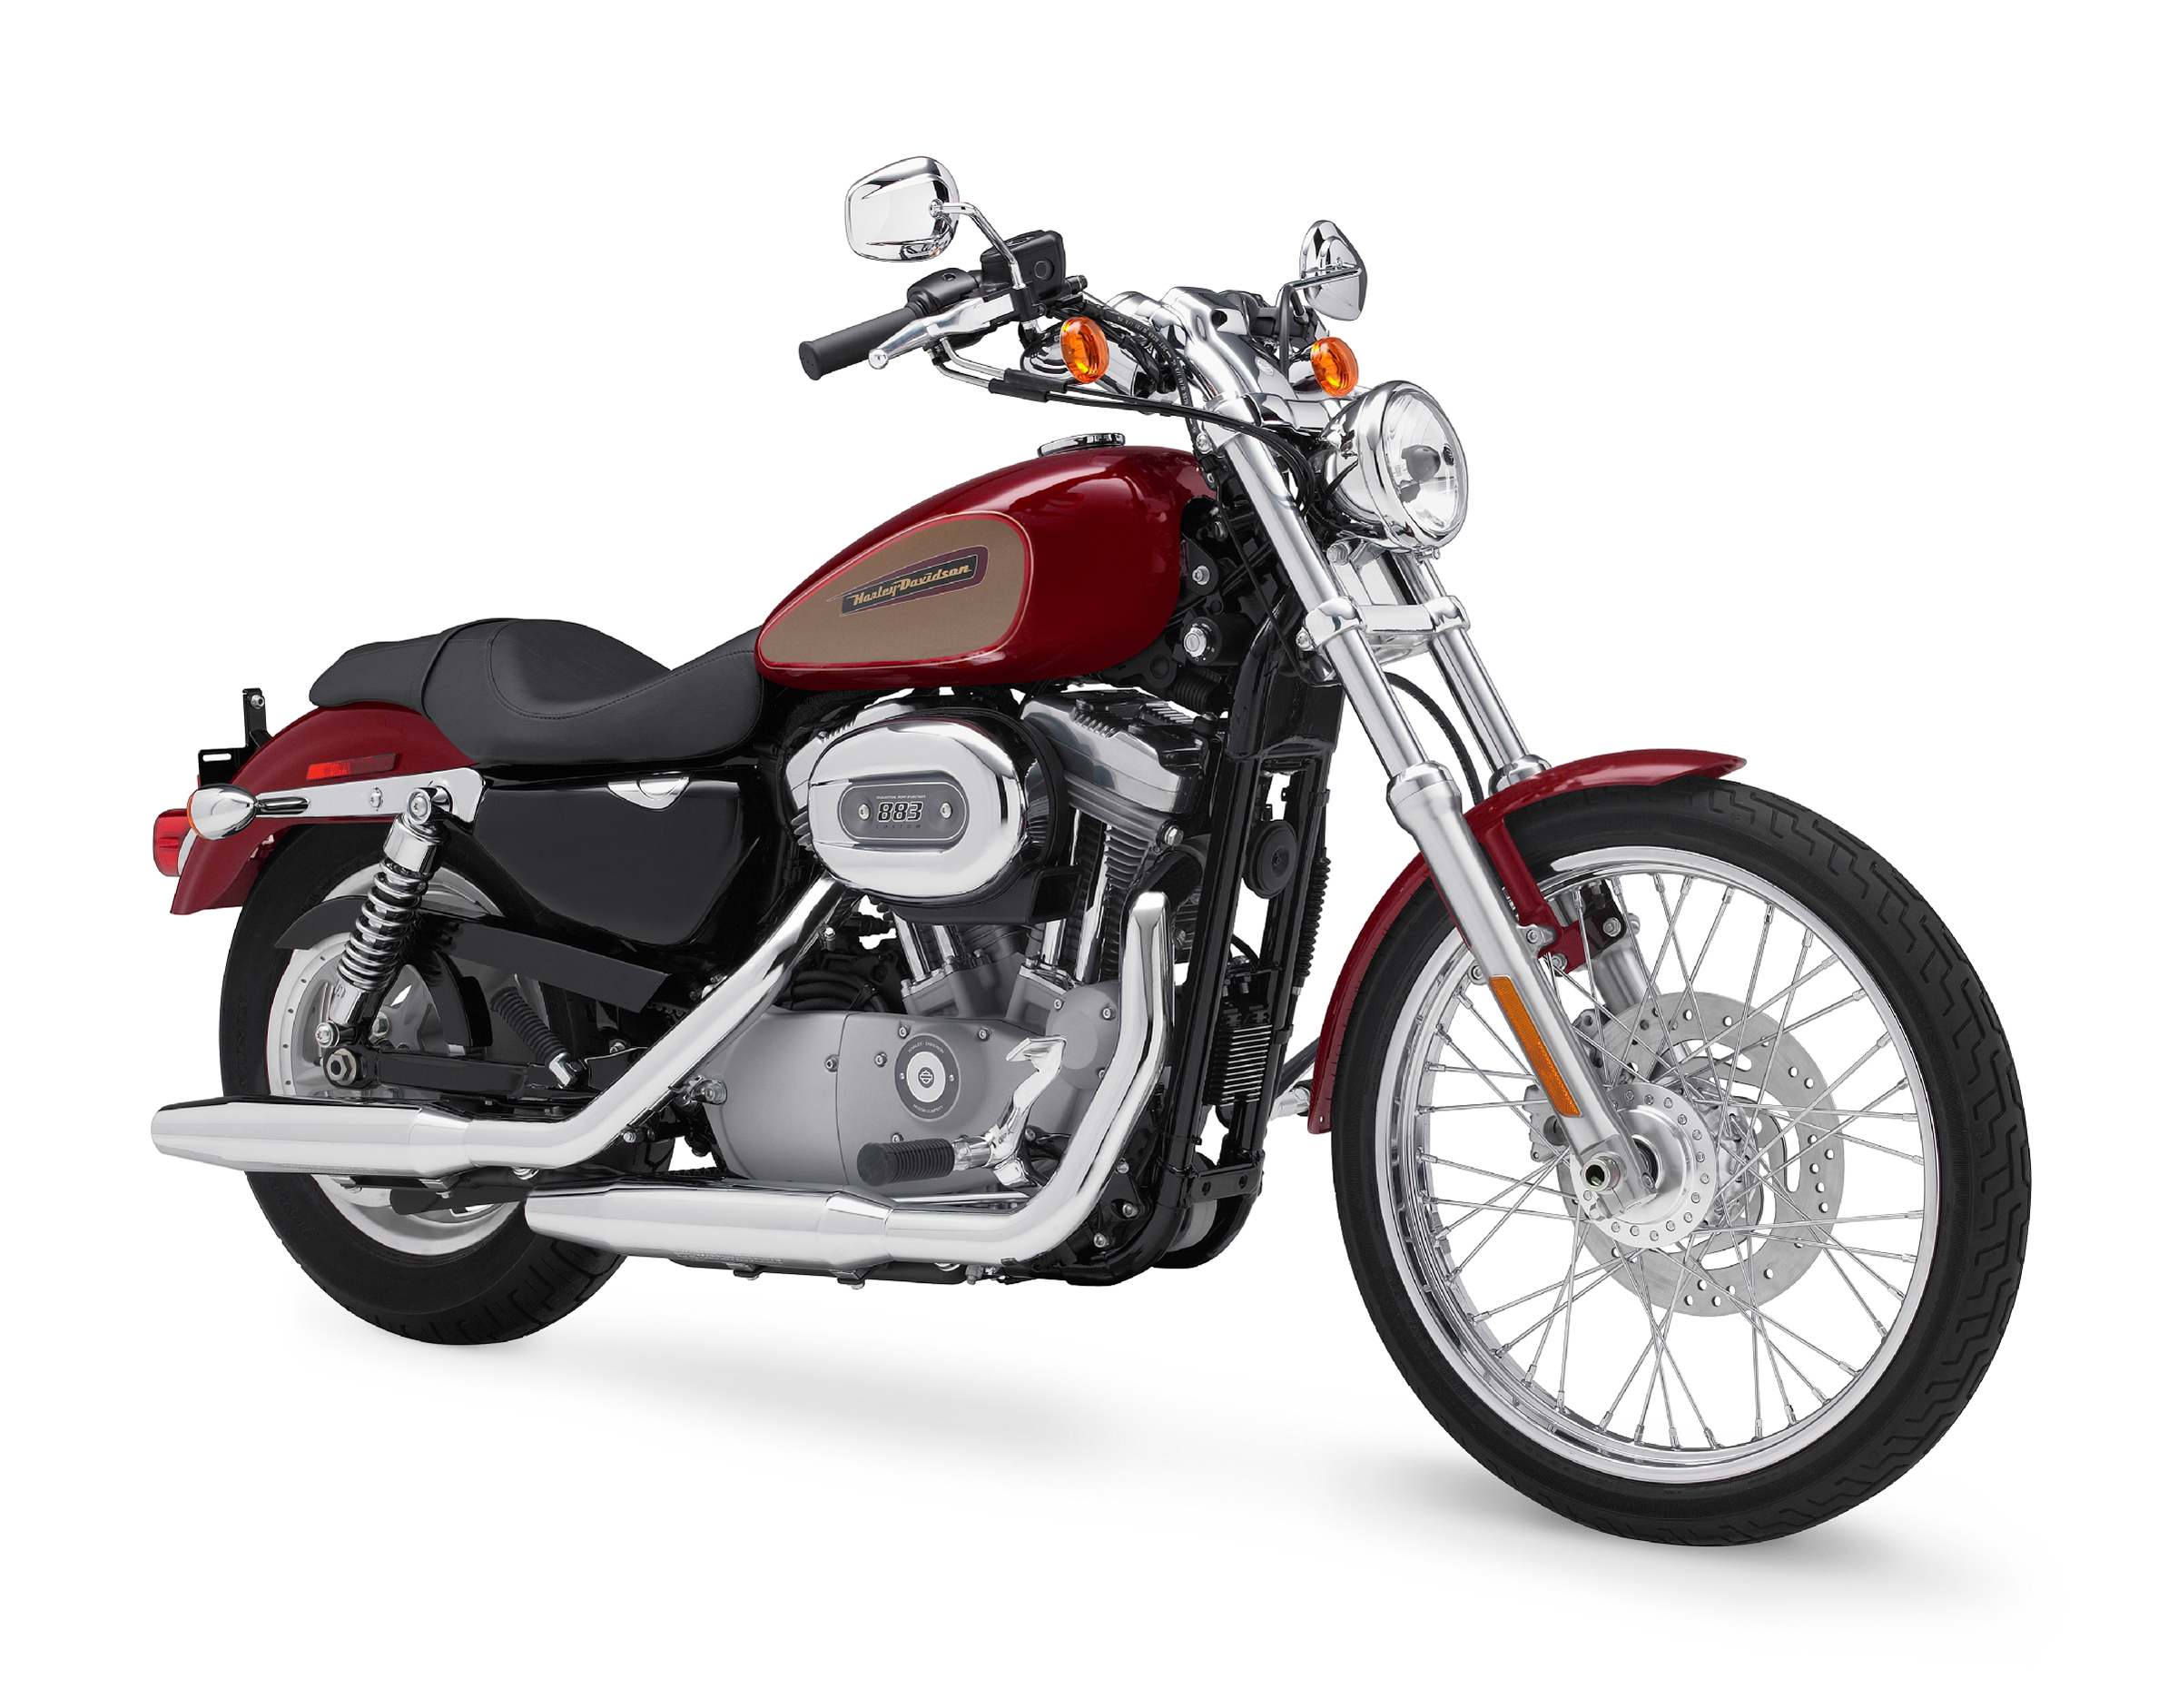 2009 Harley-Davidson XL Sportster 883 Low/Custom Review - Top Speed